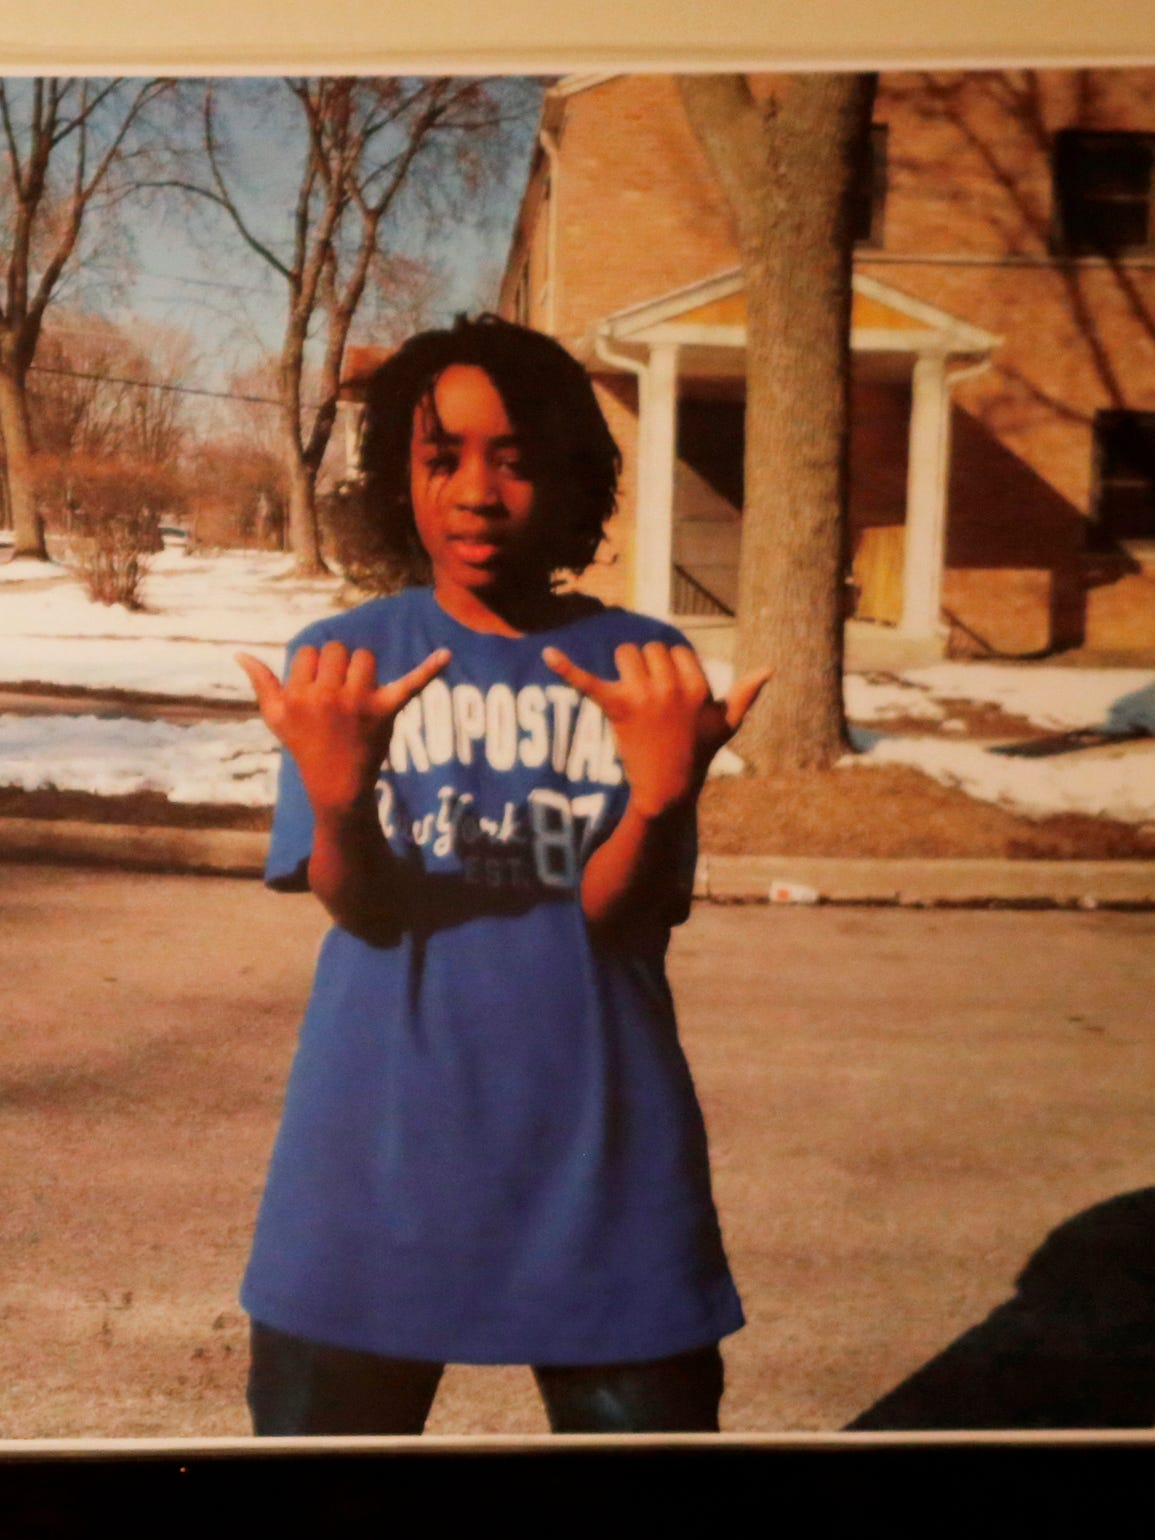 A poster photo shows Giovonnie Cameron, 13, who was